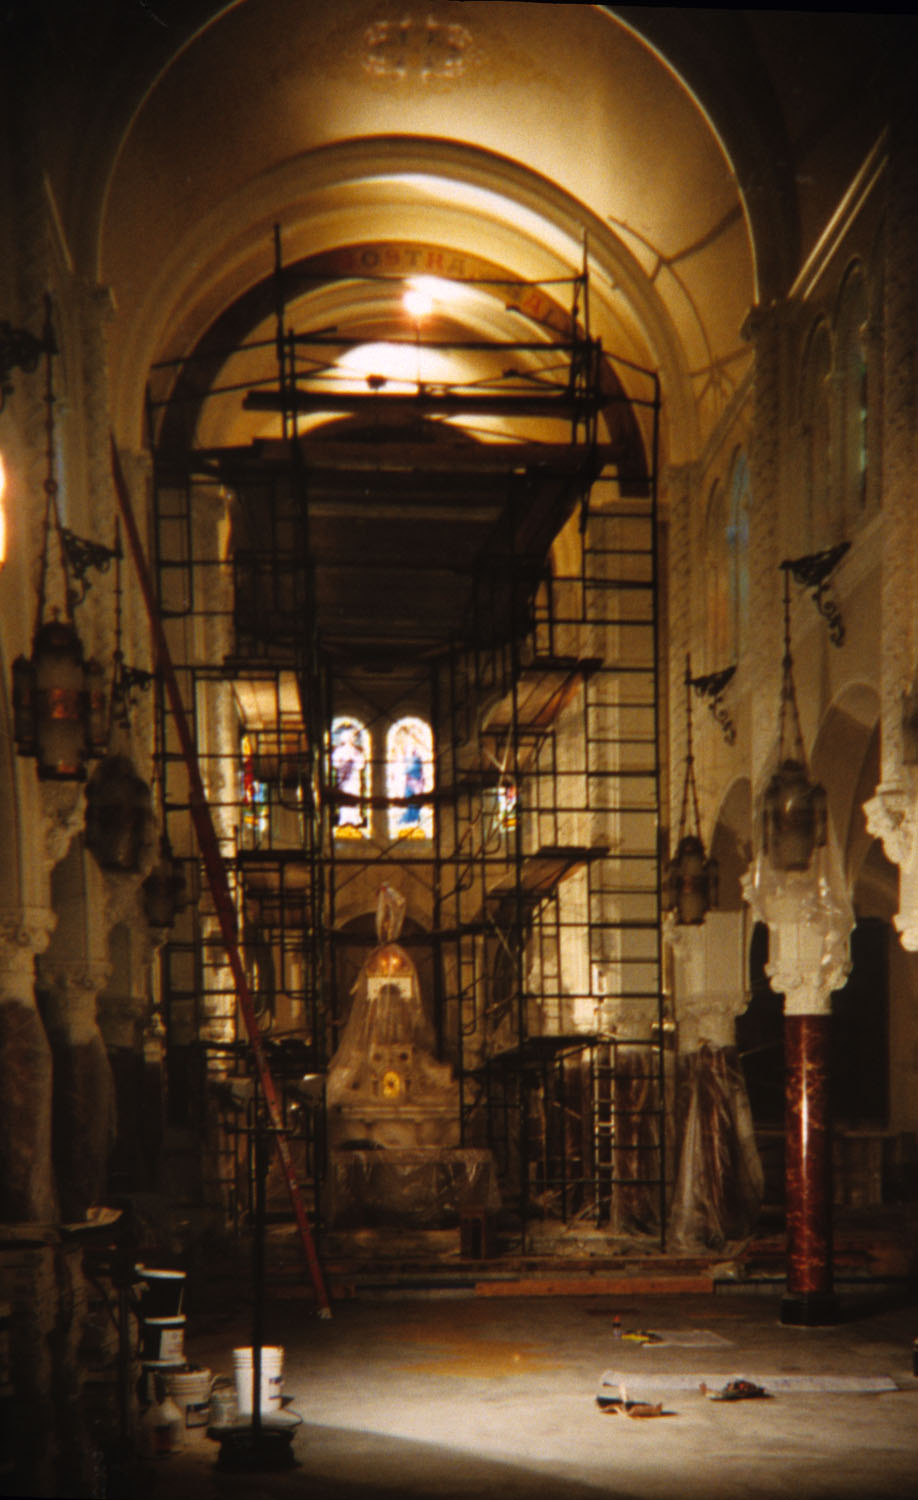 Interior of the nave during construction. The stained glass windows were inspected and catalogued by an objects conservator, then cleaned and repaired by a stained glass specialist. The interior was repainted, including repainting of stencils on the nave ceiling. New flooring and sub-flooring were installed, with restoration and refinishing of the marble floors at the entry and altar.